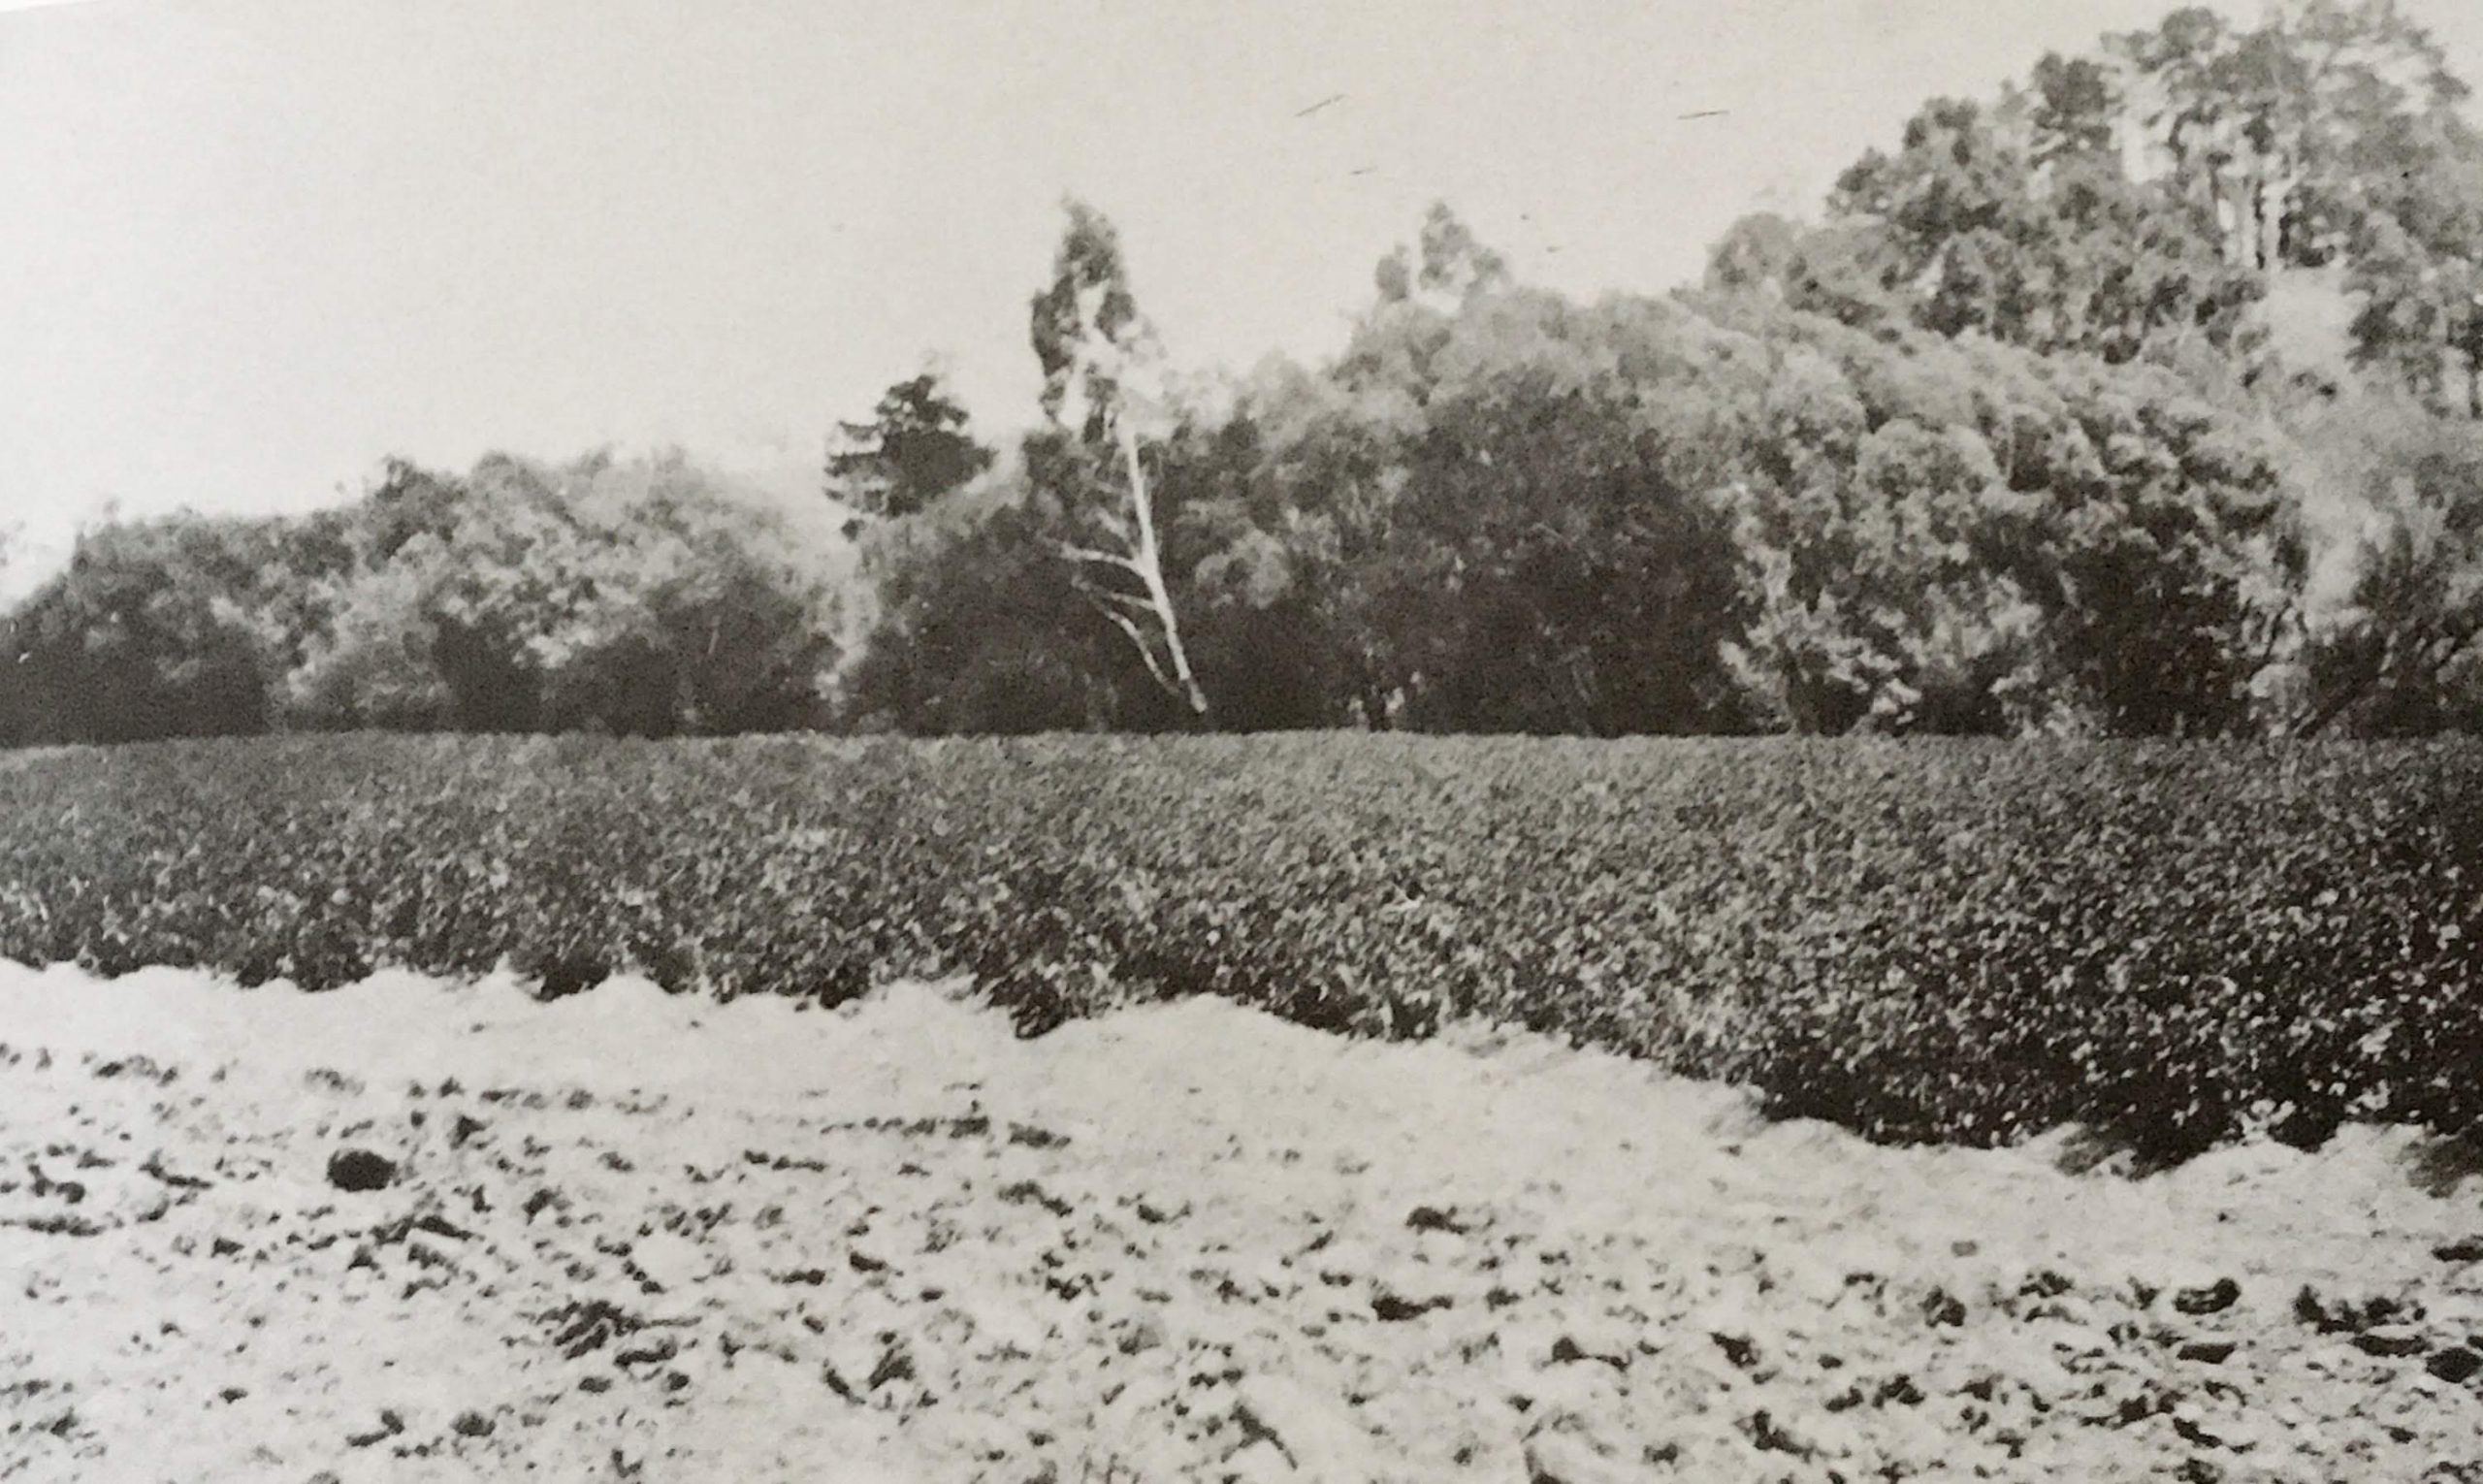 Potatoes grown in the Yan Yean and Arthurs Creek districts.  Photo credit James Chester Draper